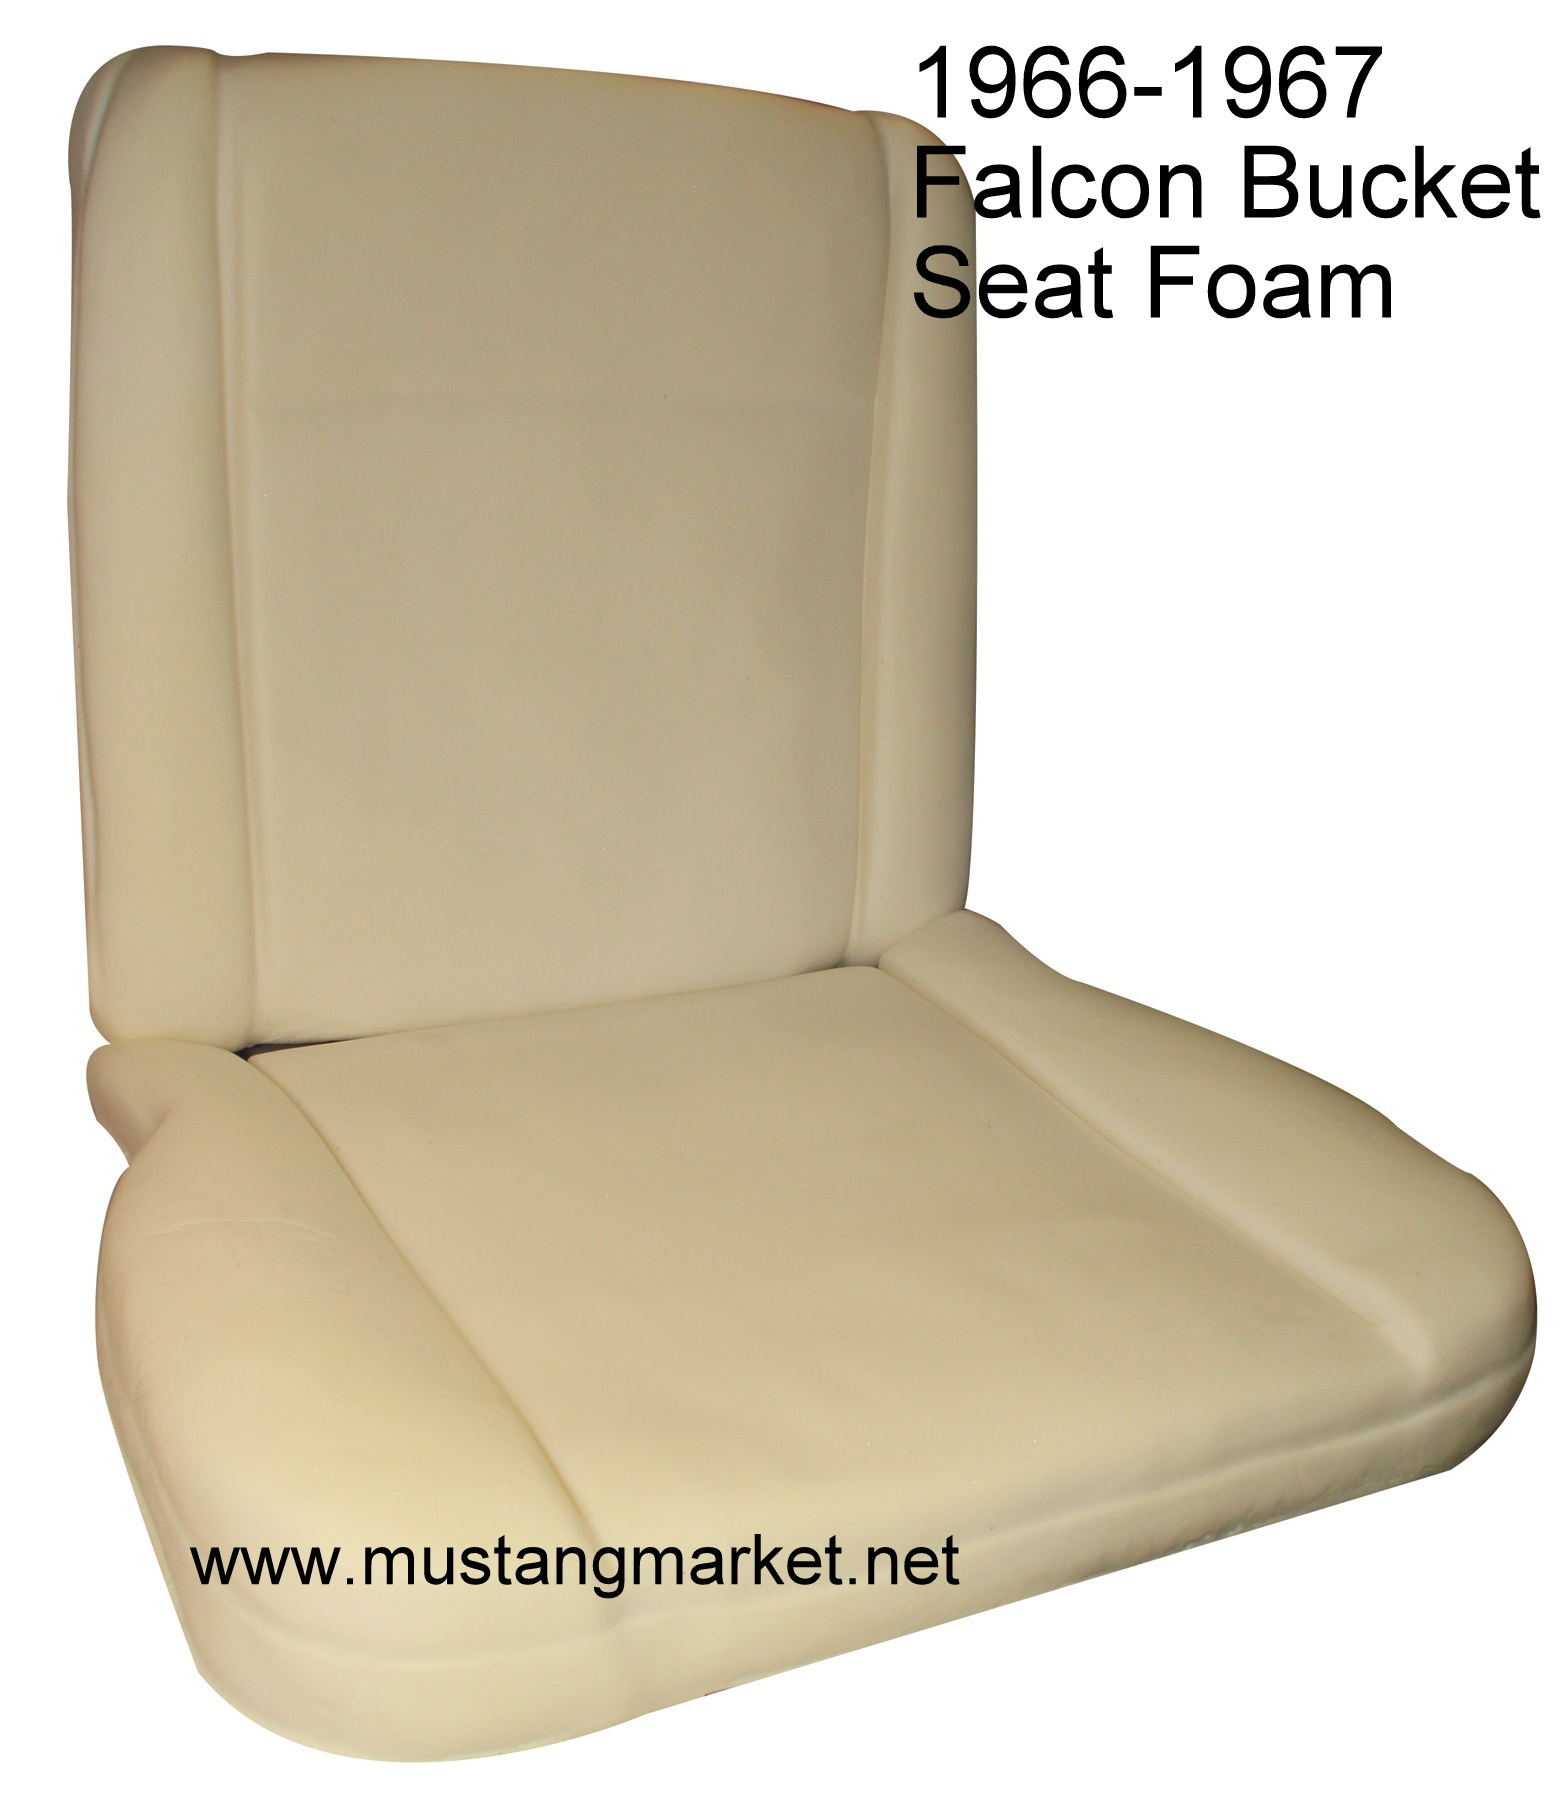 1966 Falcon Bucket Seat Foam